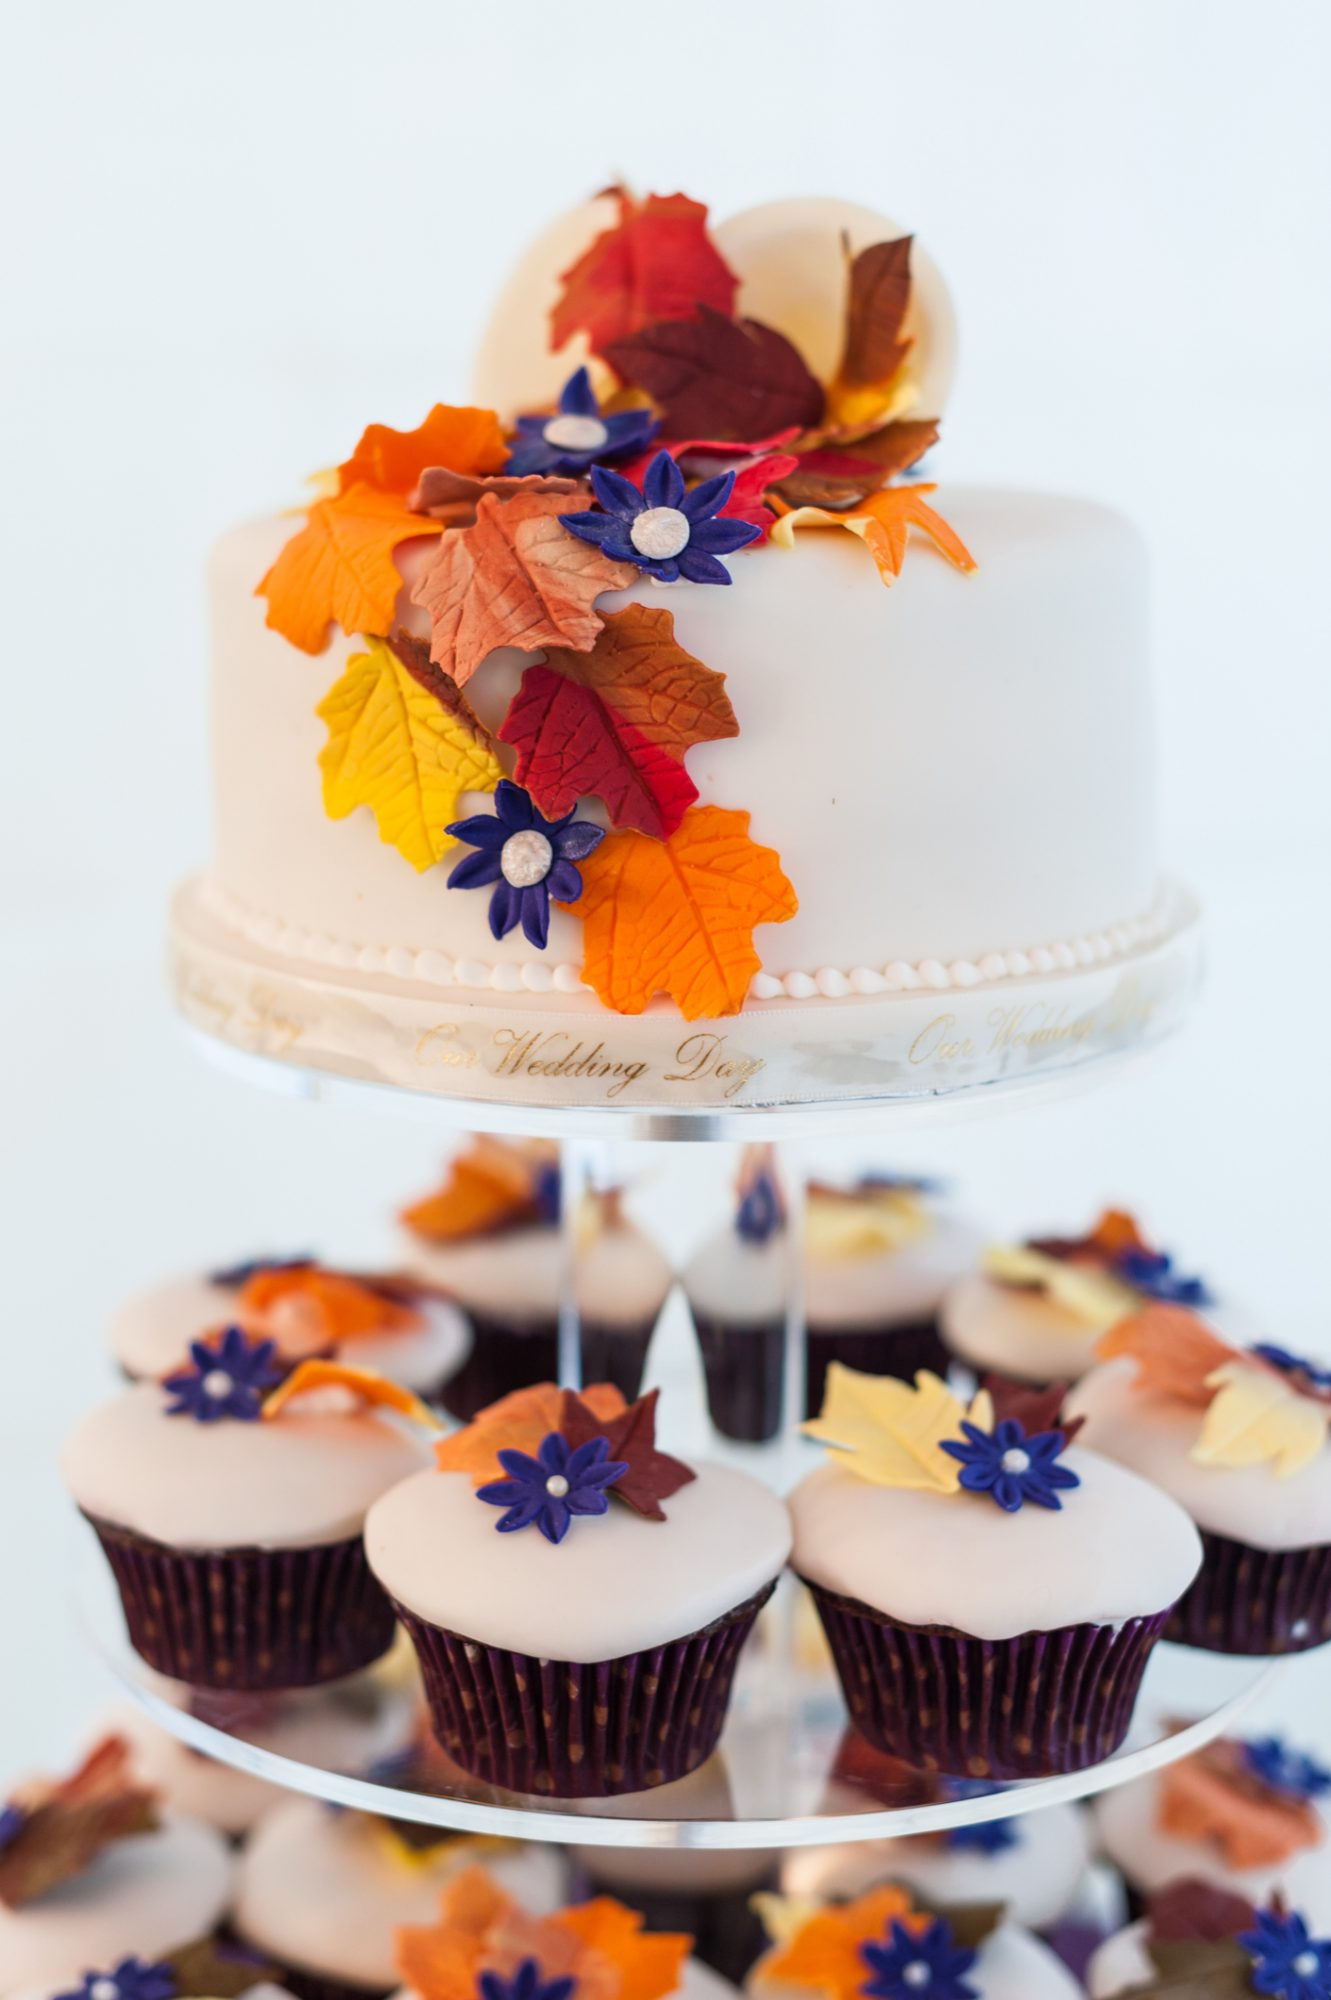 Bright colored fall themed cupcakes